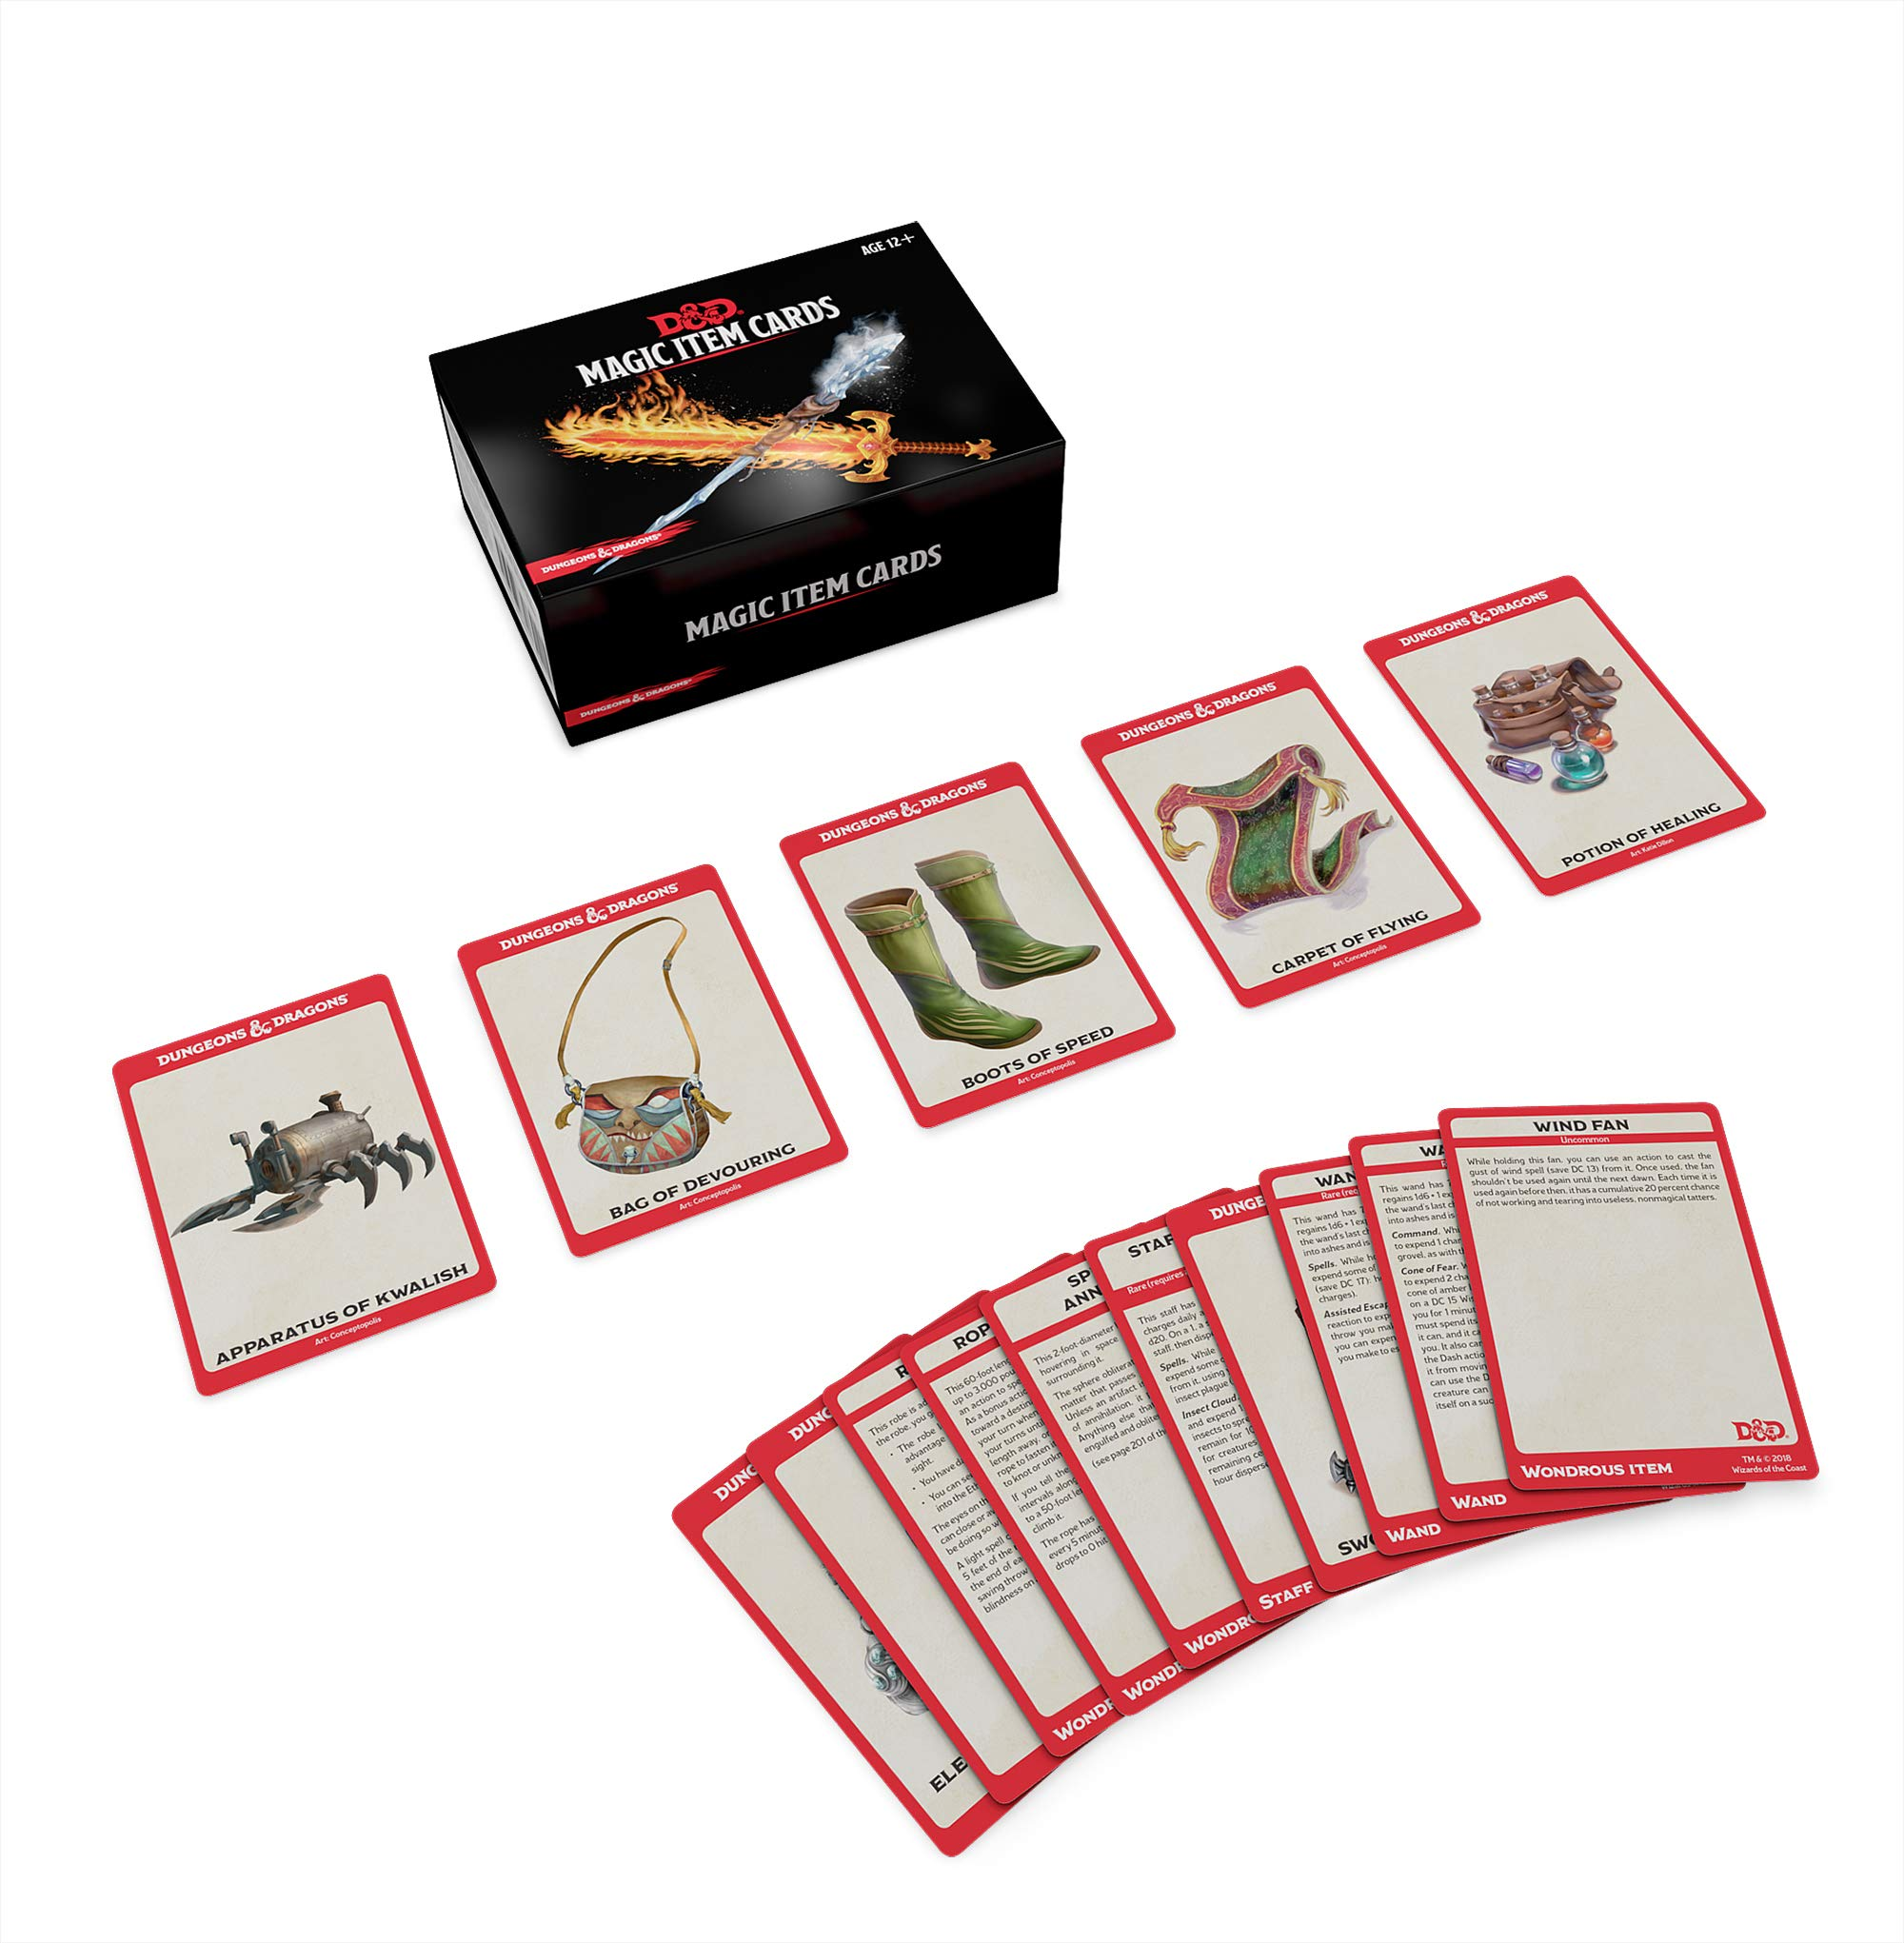 Dungeons Dragons Spellbook Cards Magic Items D D Accessory Gale Force Nine 9780786966707 Amazon Com Books In addition to this striding ability (considered an enhancement bonus), these boots allow the wearer to make great leaps. dungeons dragons spellbook cards